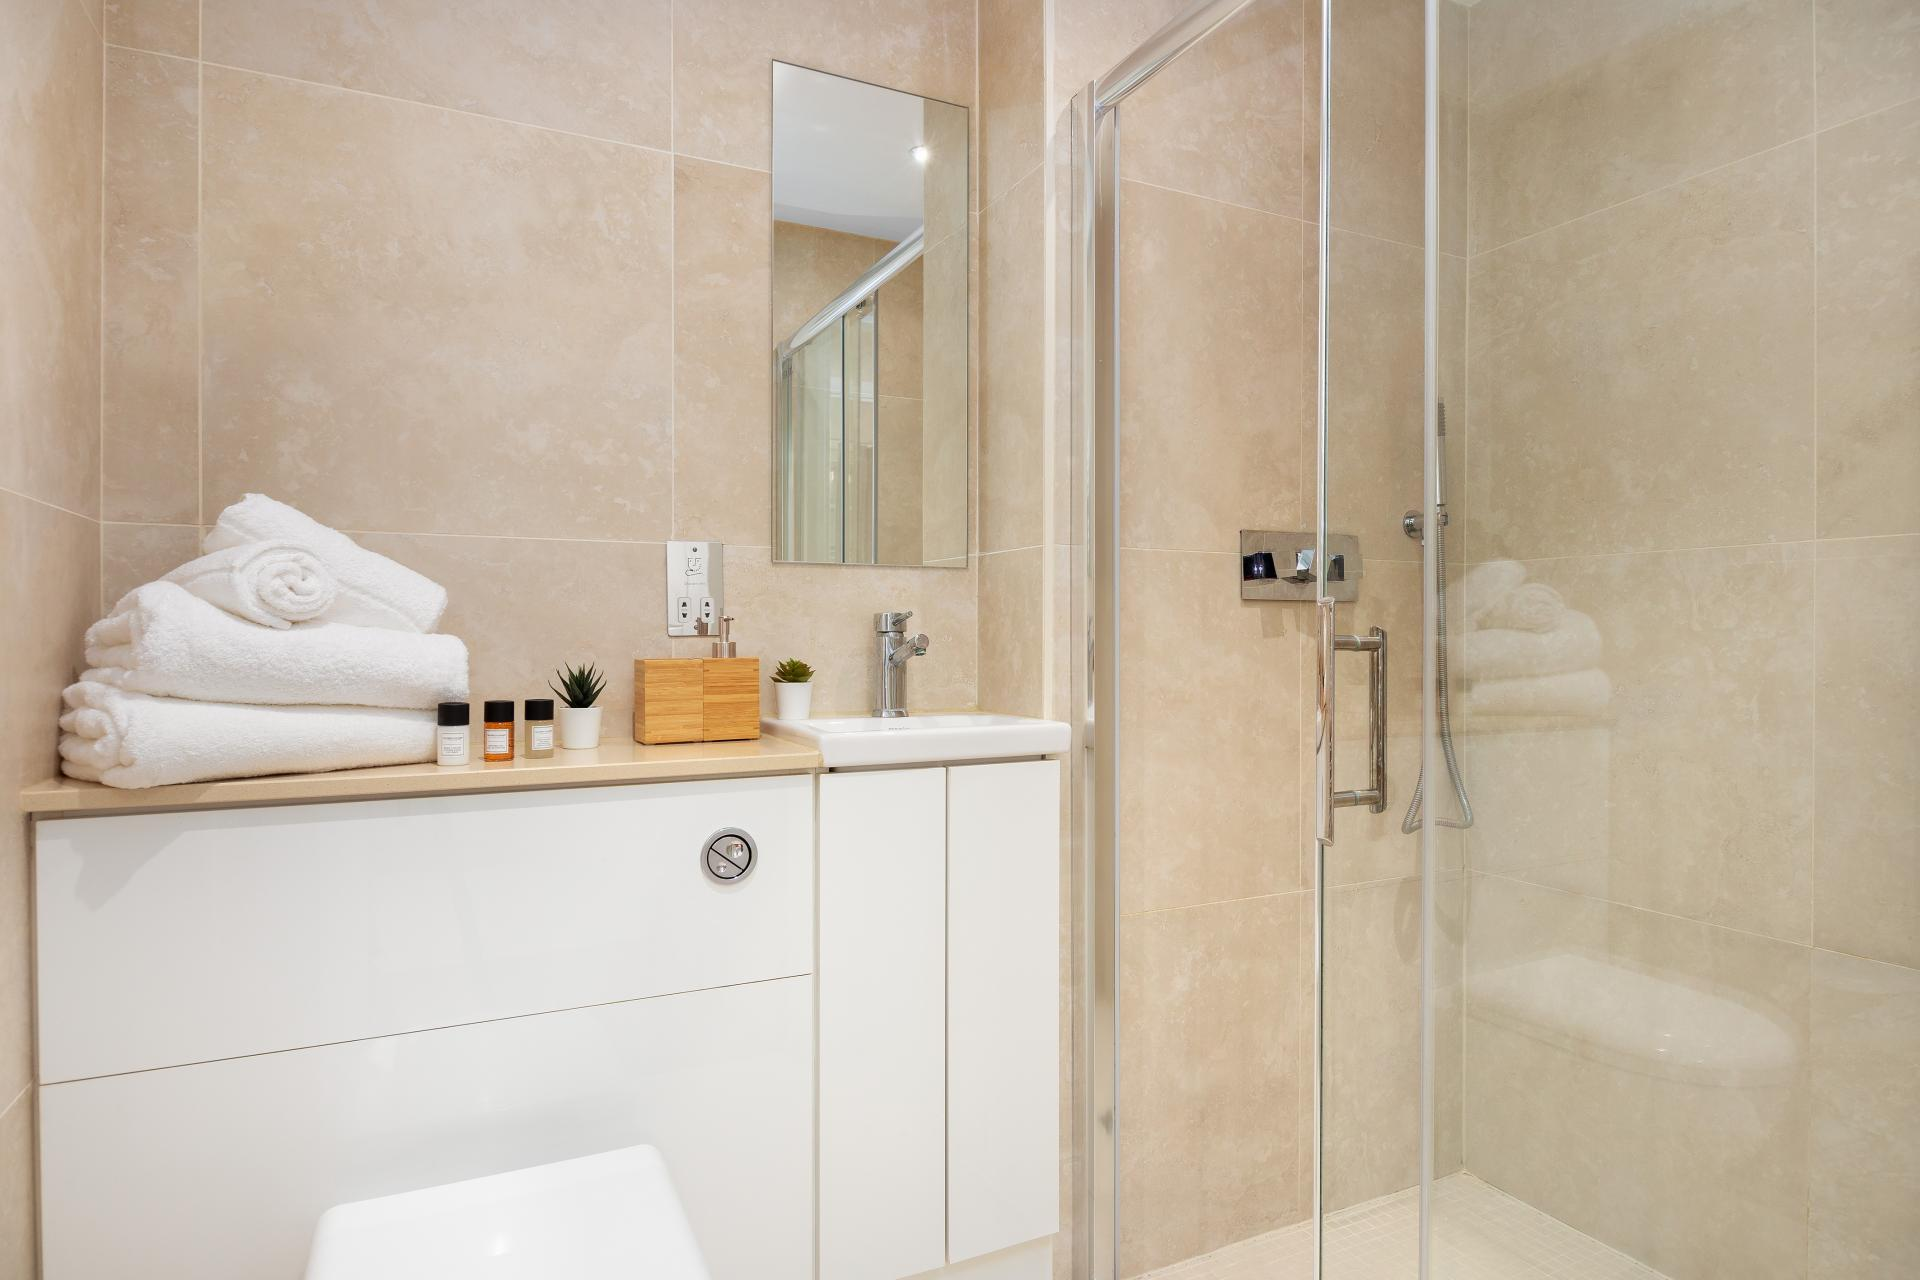 Bathroom at Chancery Lane Apartment, Chancery Lane, London - Citybase Apartments